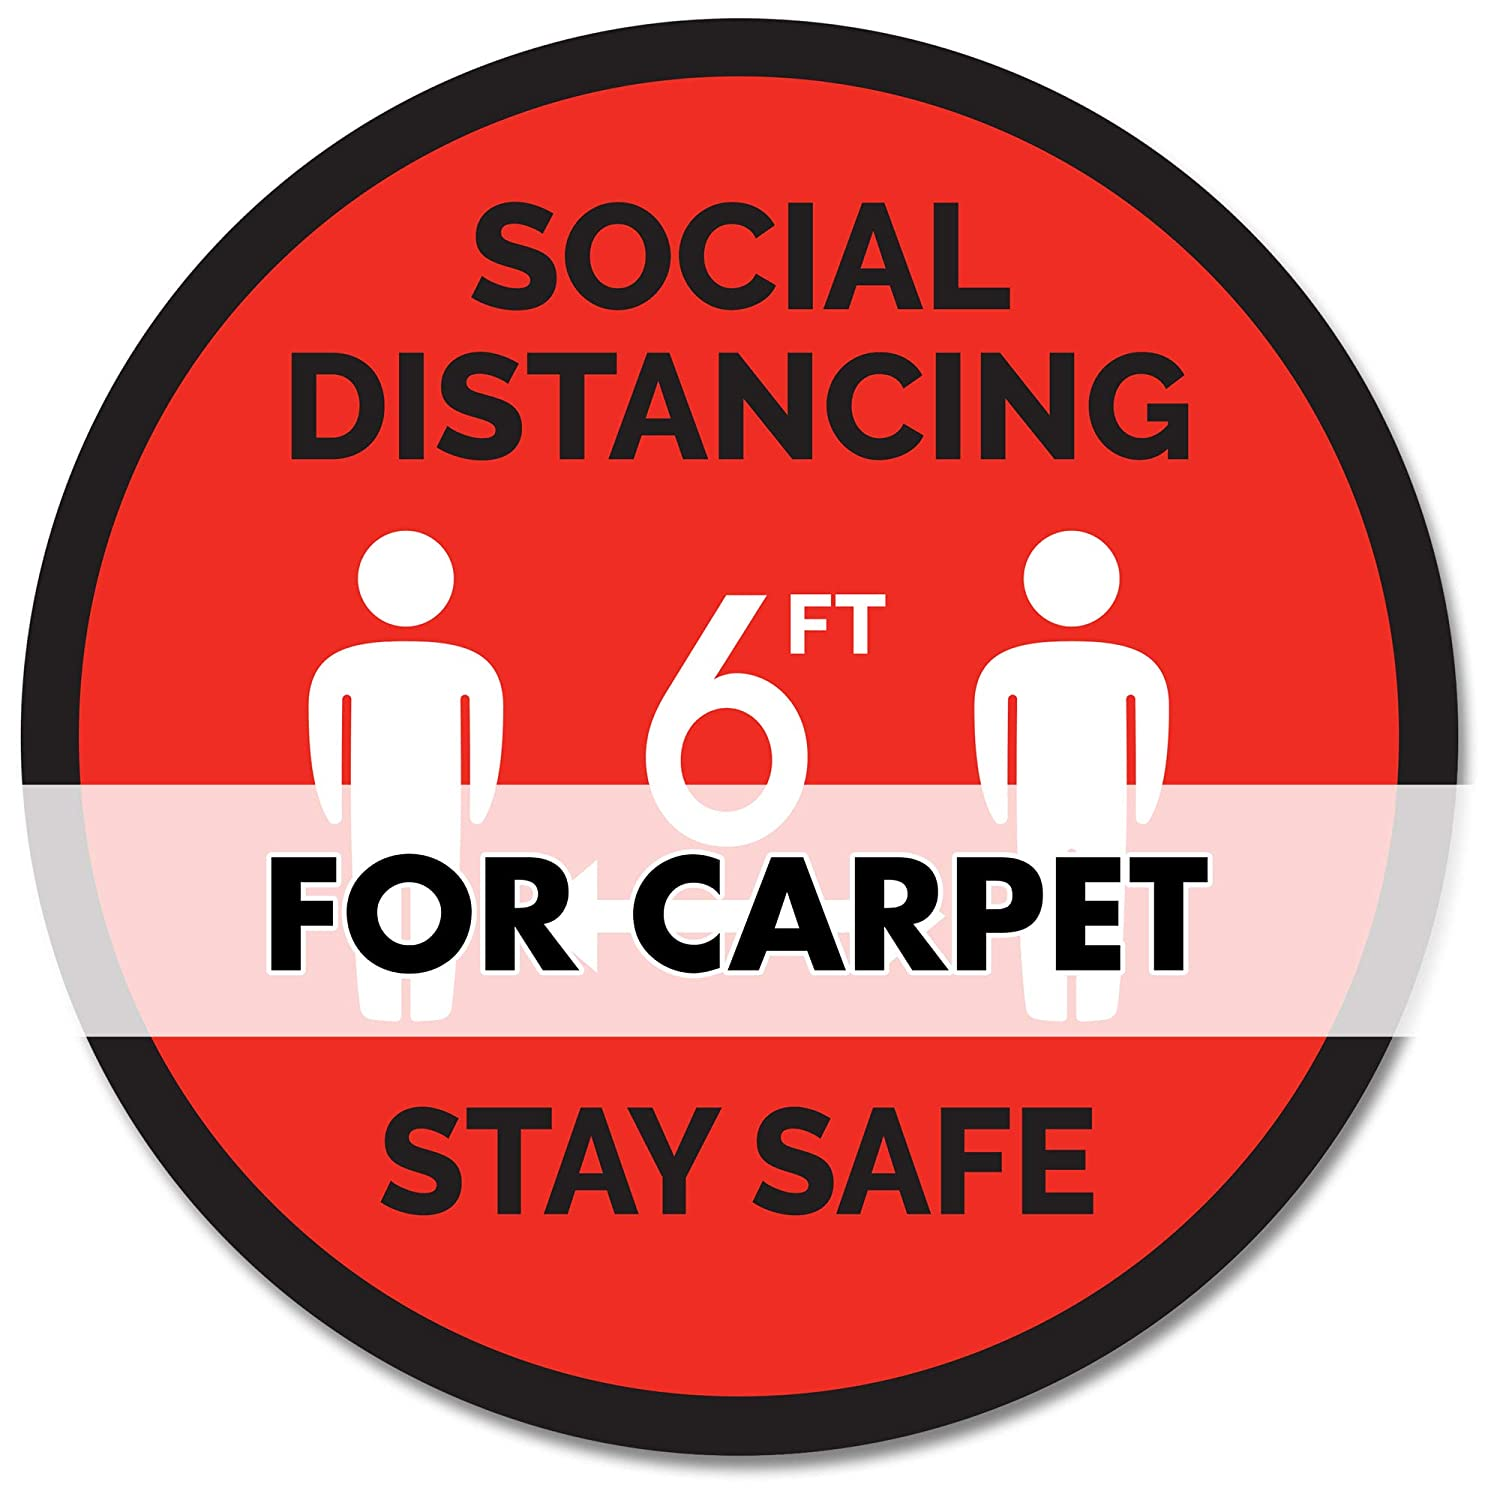 Safety Floor Sign Markers Made in The USA Anti-Slip Red - Stay Safe Social Distancing Carpet Decals Commercial Grade for Carpeting Carpet 12 Round - 12 Pack